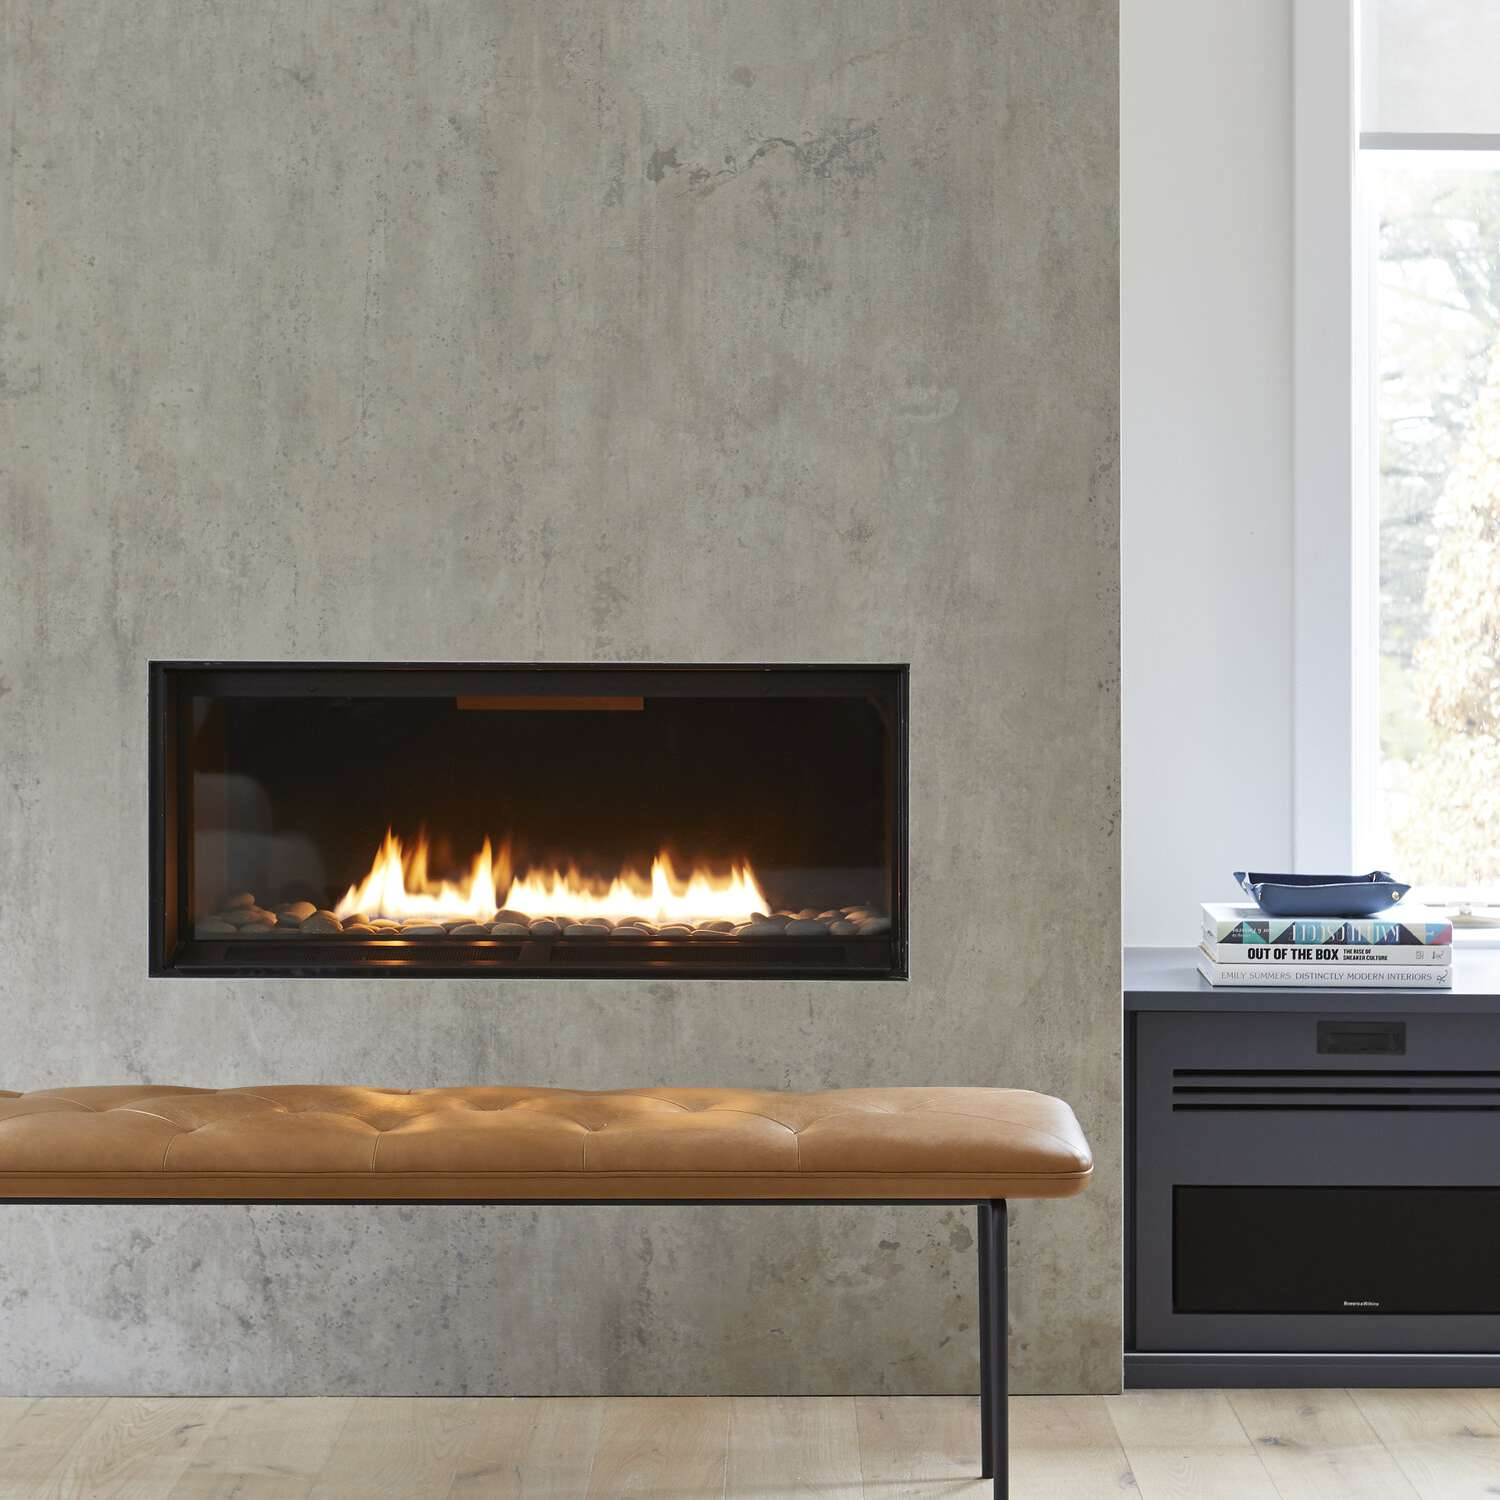 A living room with a cement fireplace